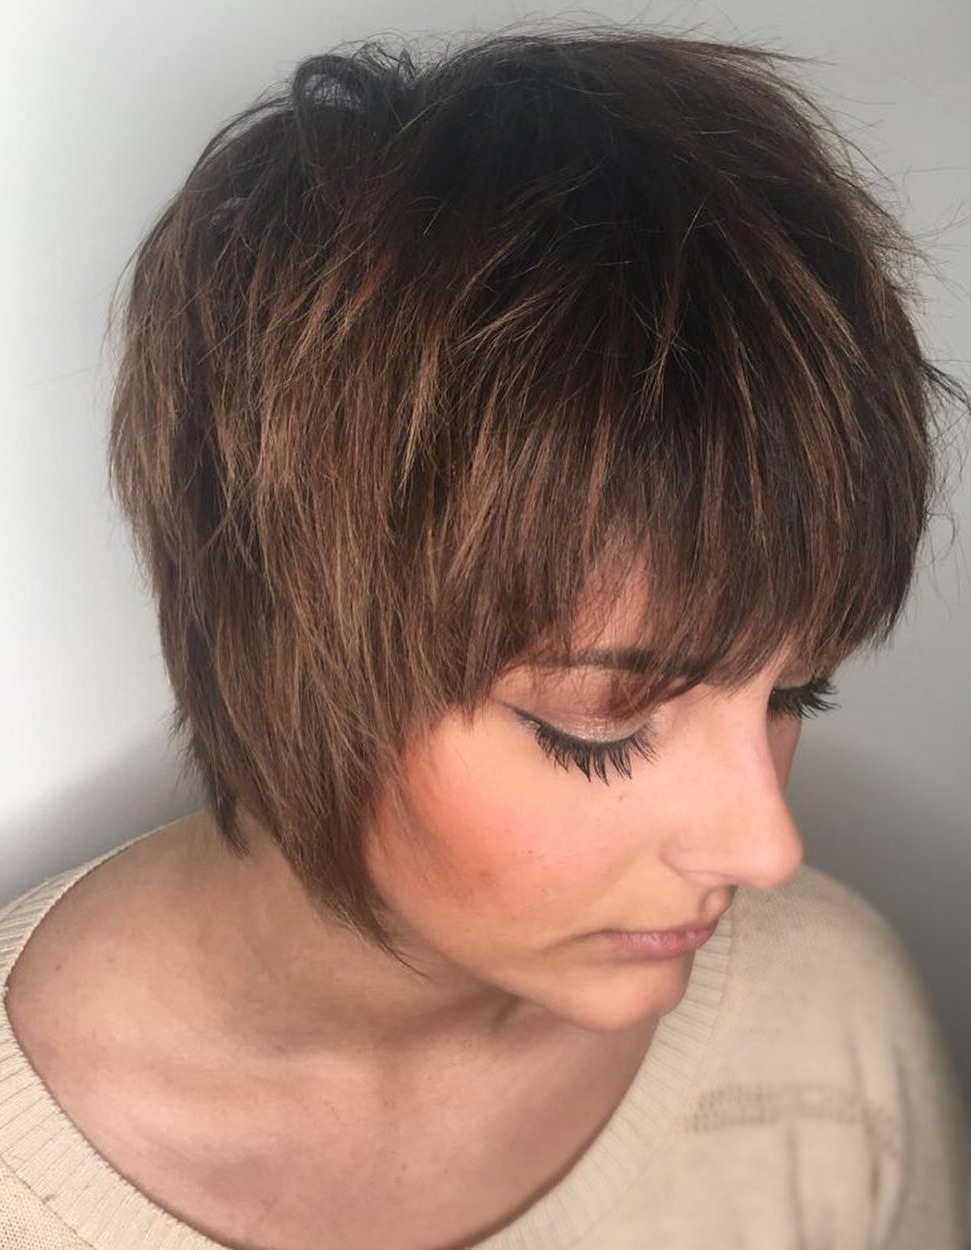 2018 Feathered Pixie Shag Haircuts With Highlights In Top 25 Short Shag Haircuts Right Now – Short Bob Cuts (View 4 of 20)